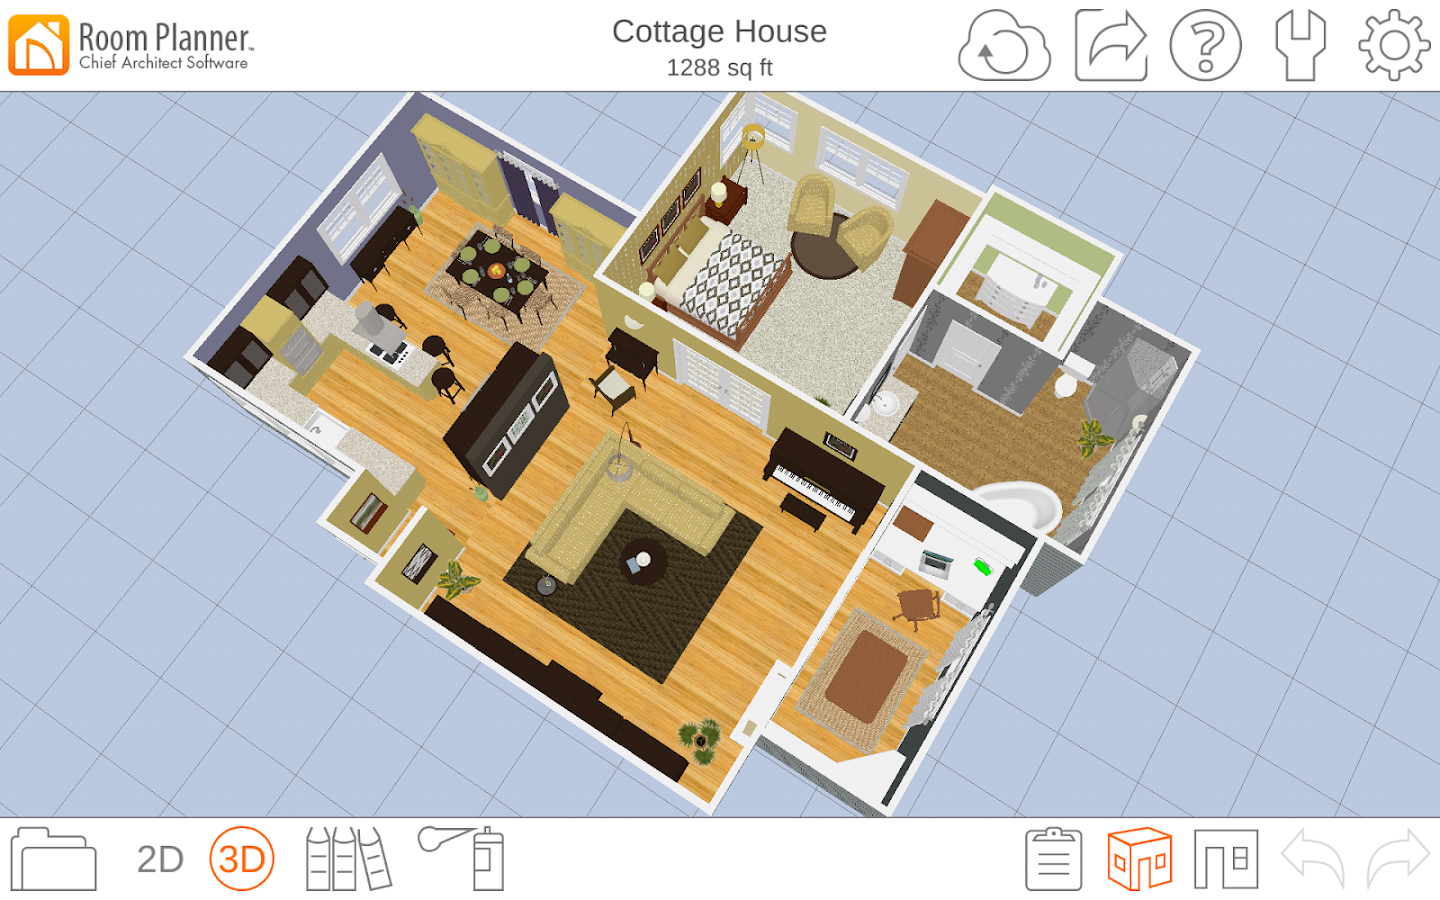 Room planner home design android apps on google play Design your room app